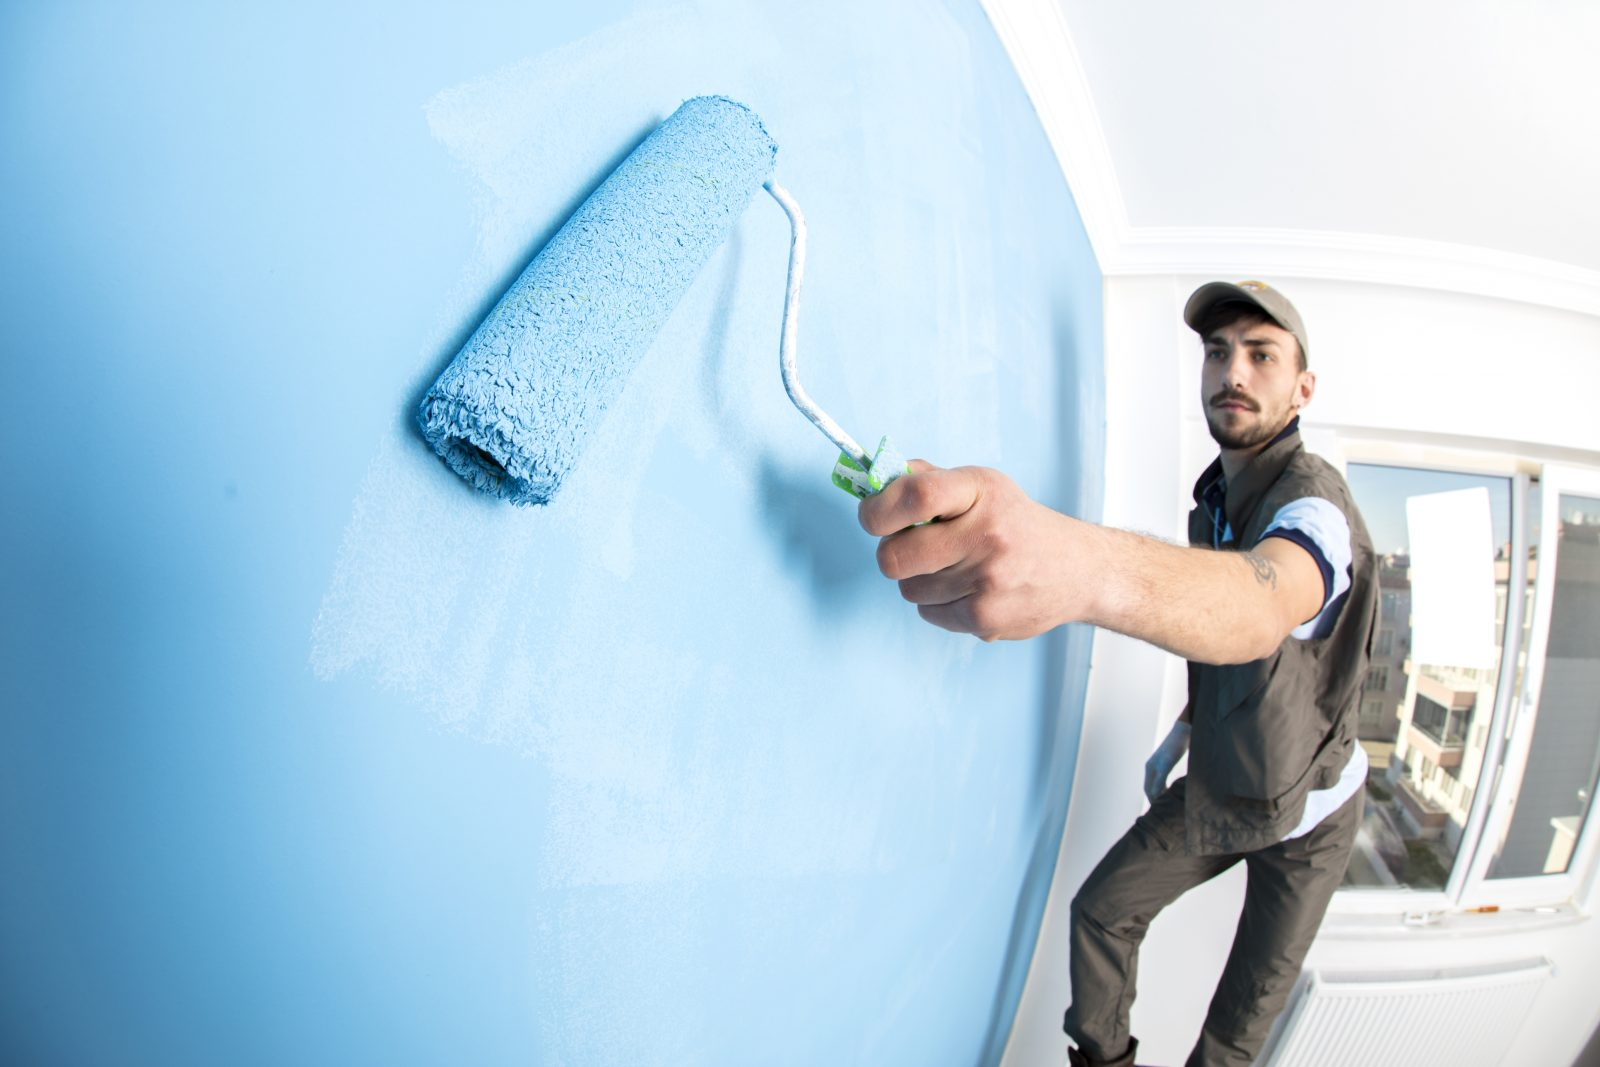 Young man painting a wall blue with a roller